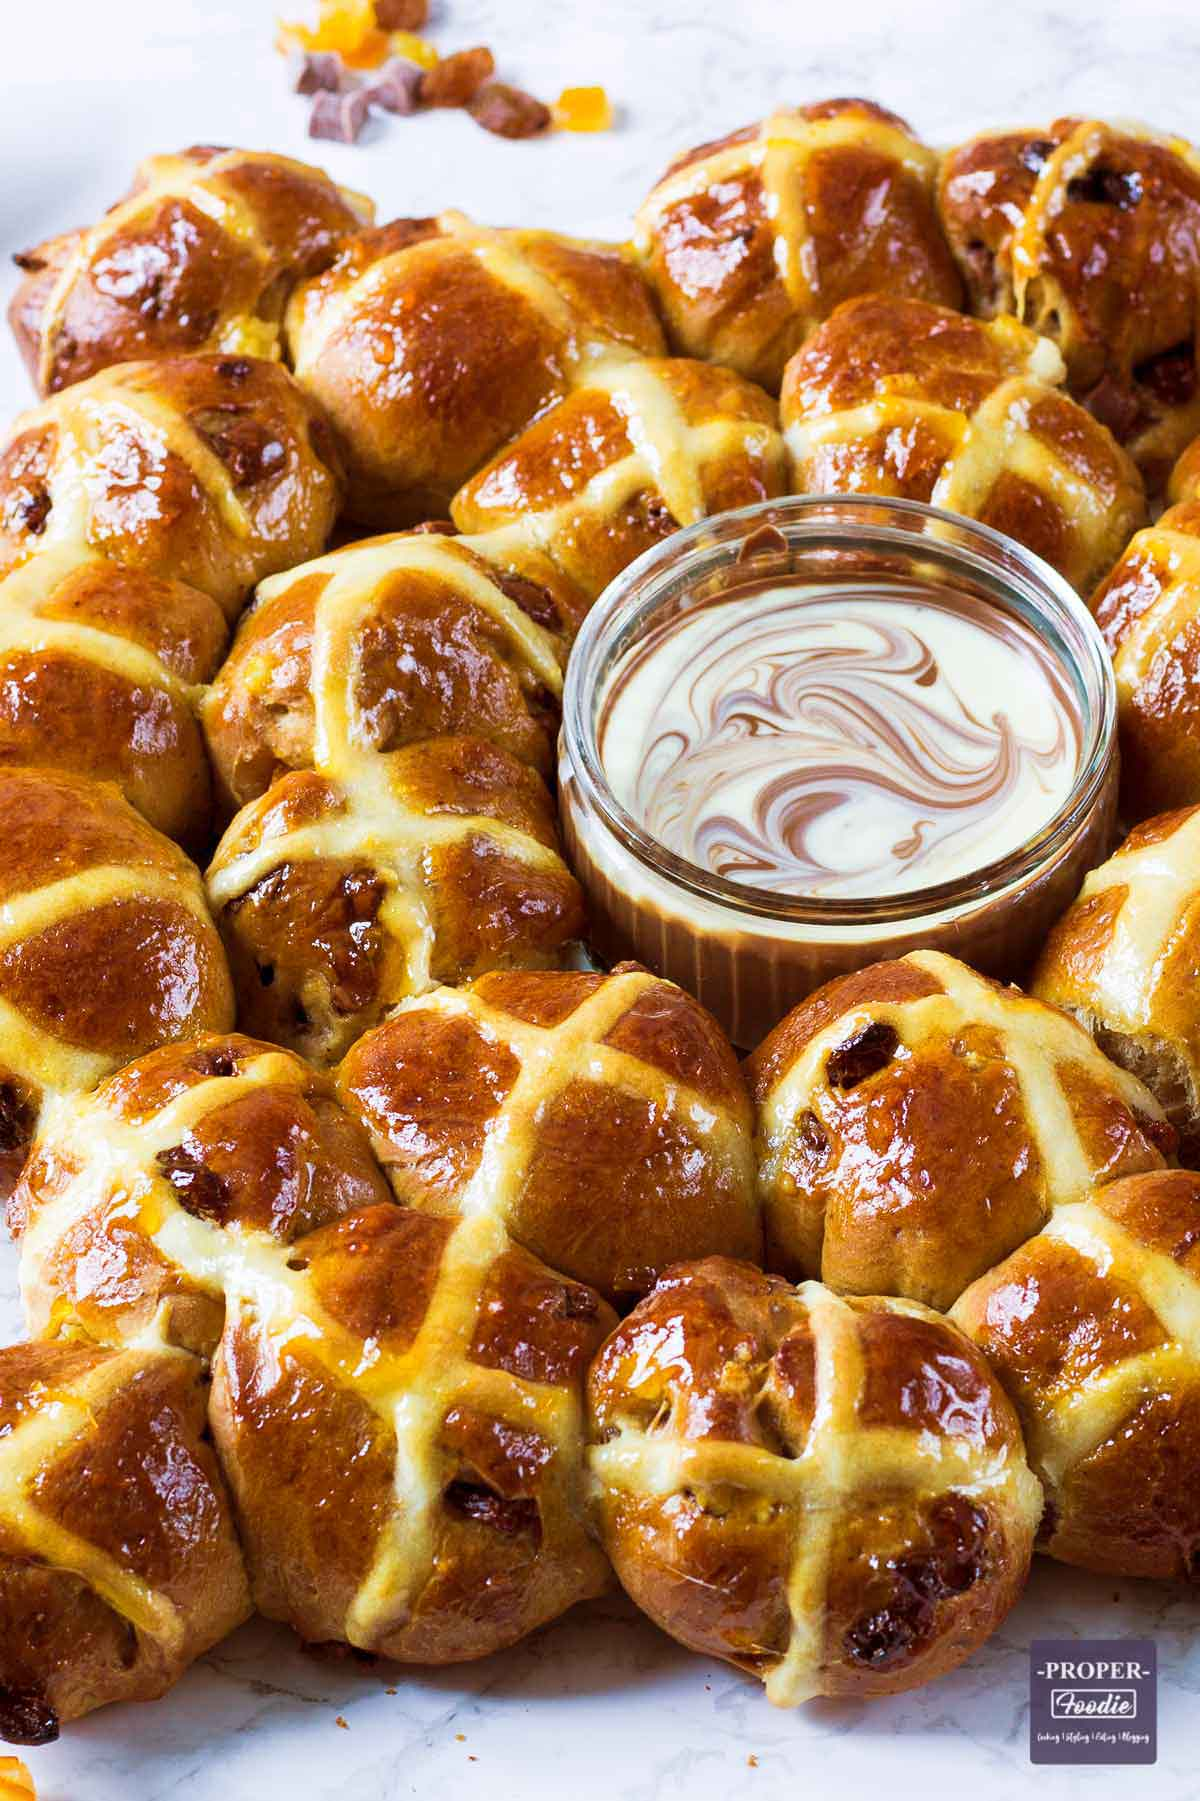 mini hot cross buns bakes in a ring shape with melted chocolate dip.